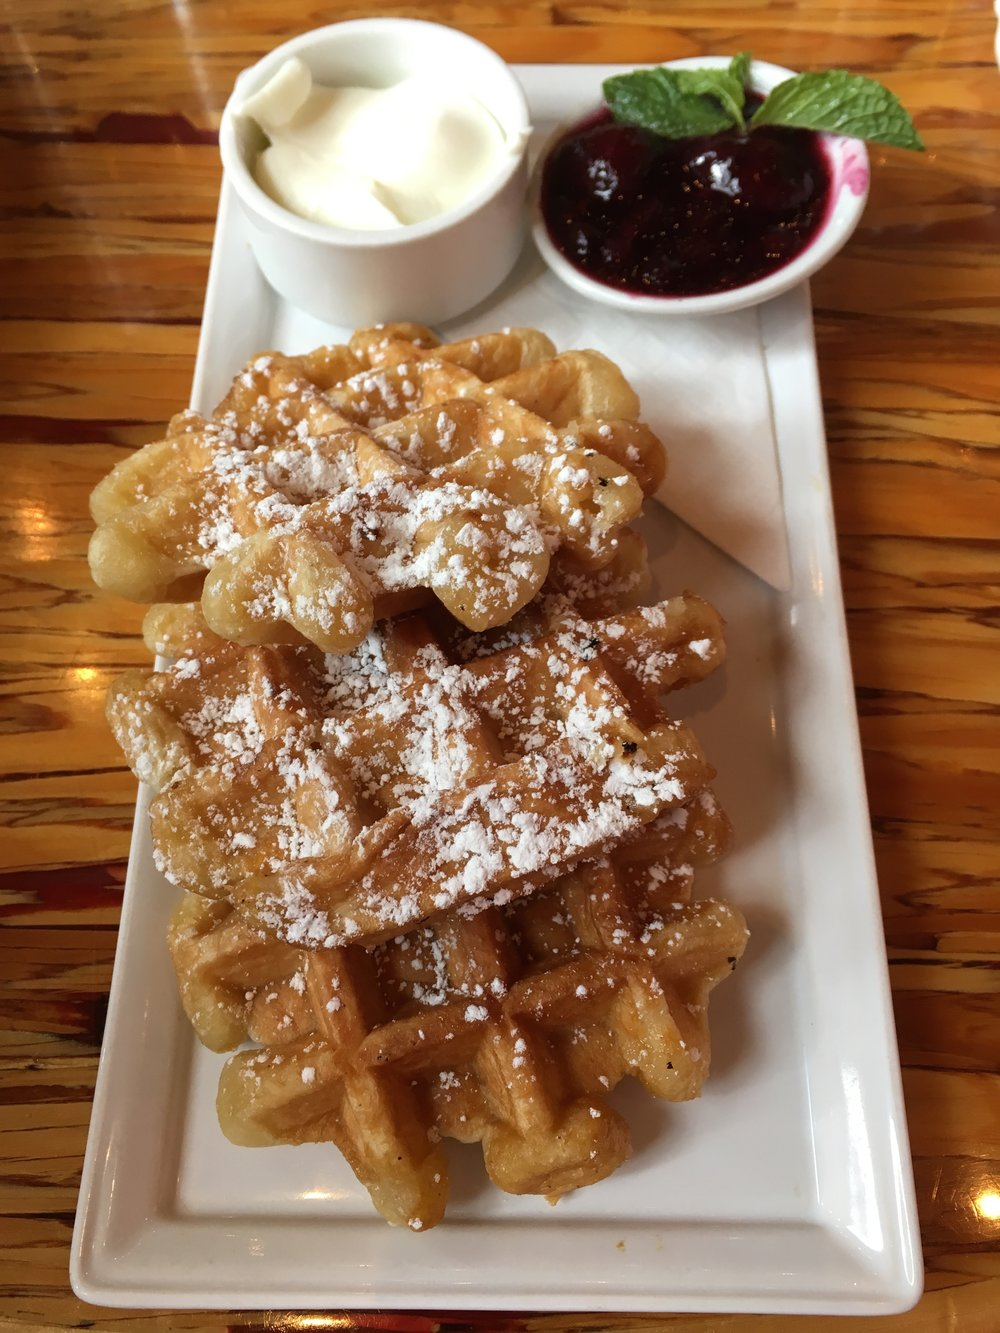 Waffles with Berry Compote and Yogurt sides